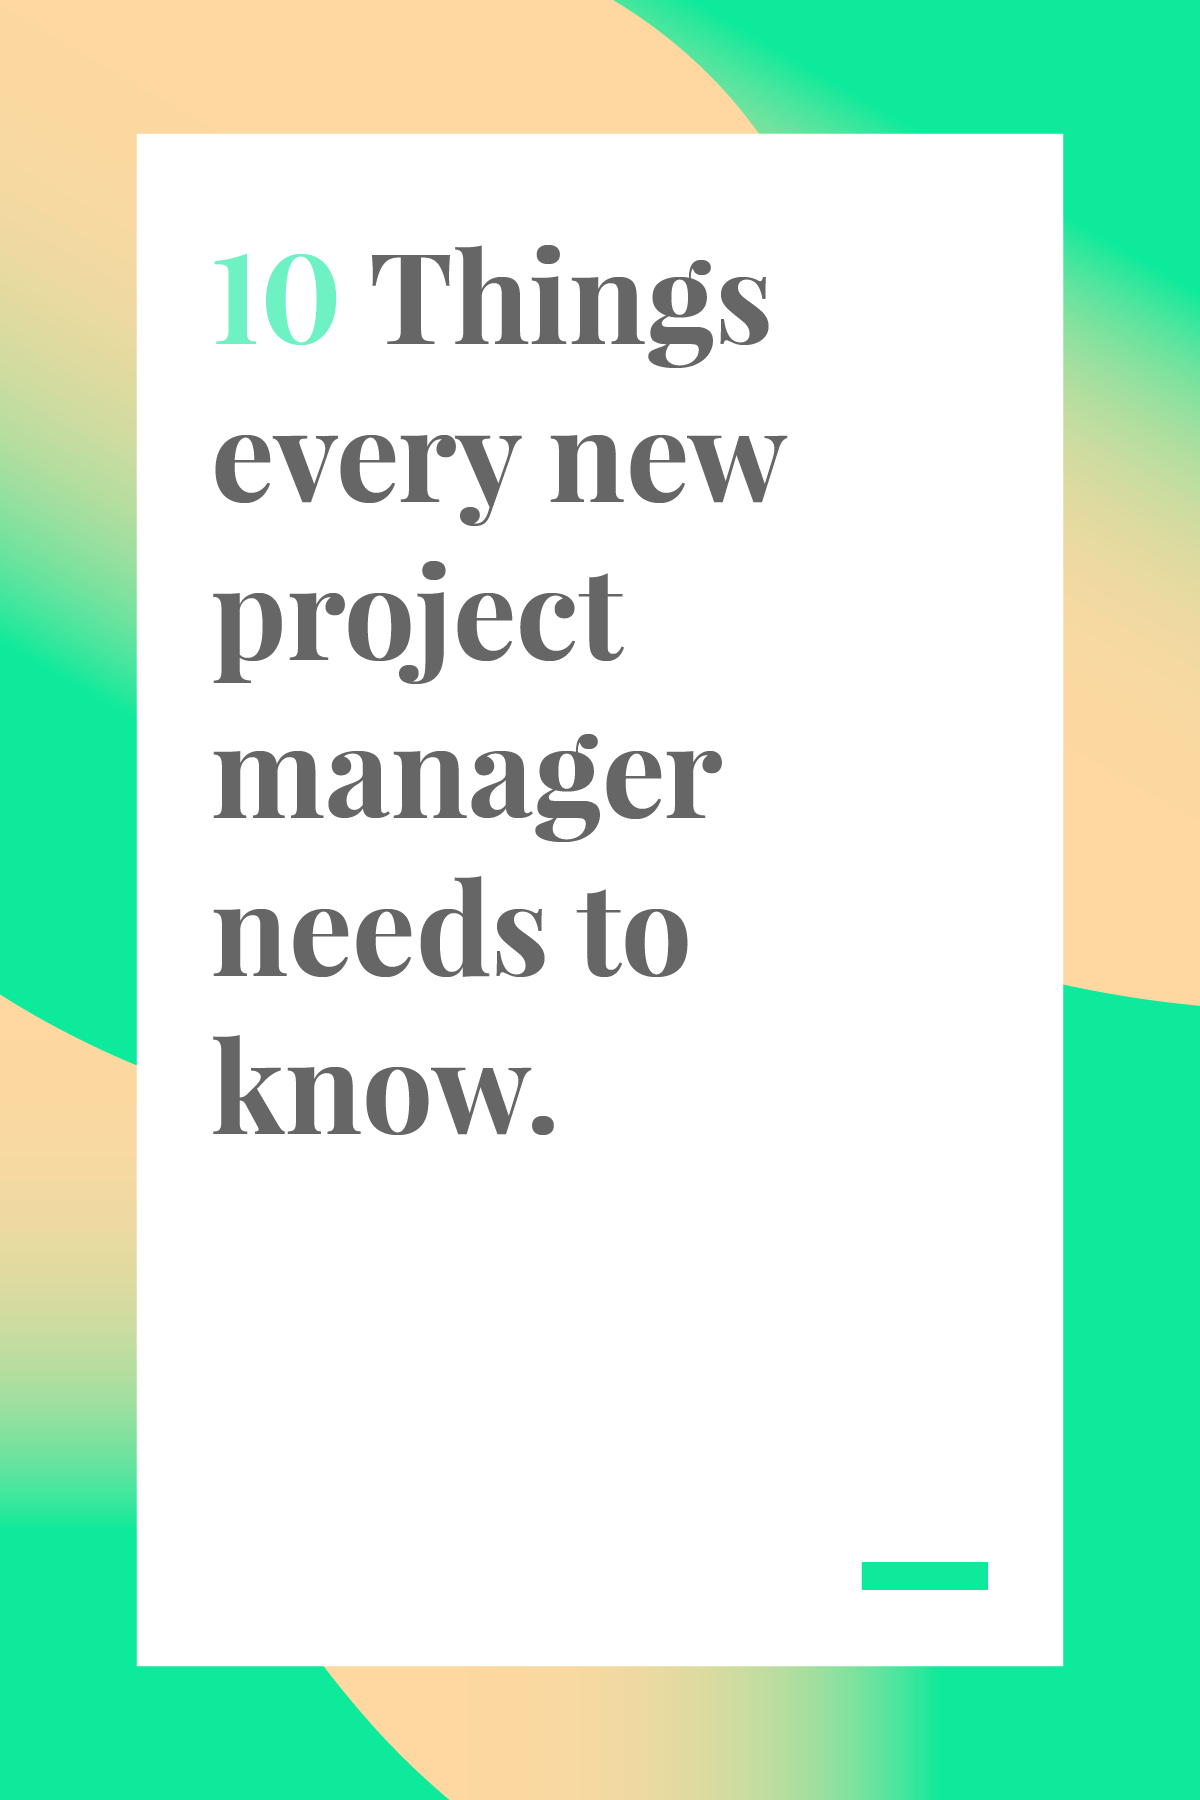 Are you new to project management? Don't miss this list of 10 things every new project manager needs to know. #projectmanagertips #projectmanagement